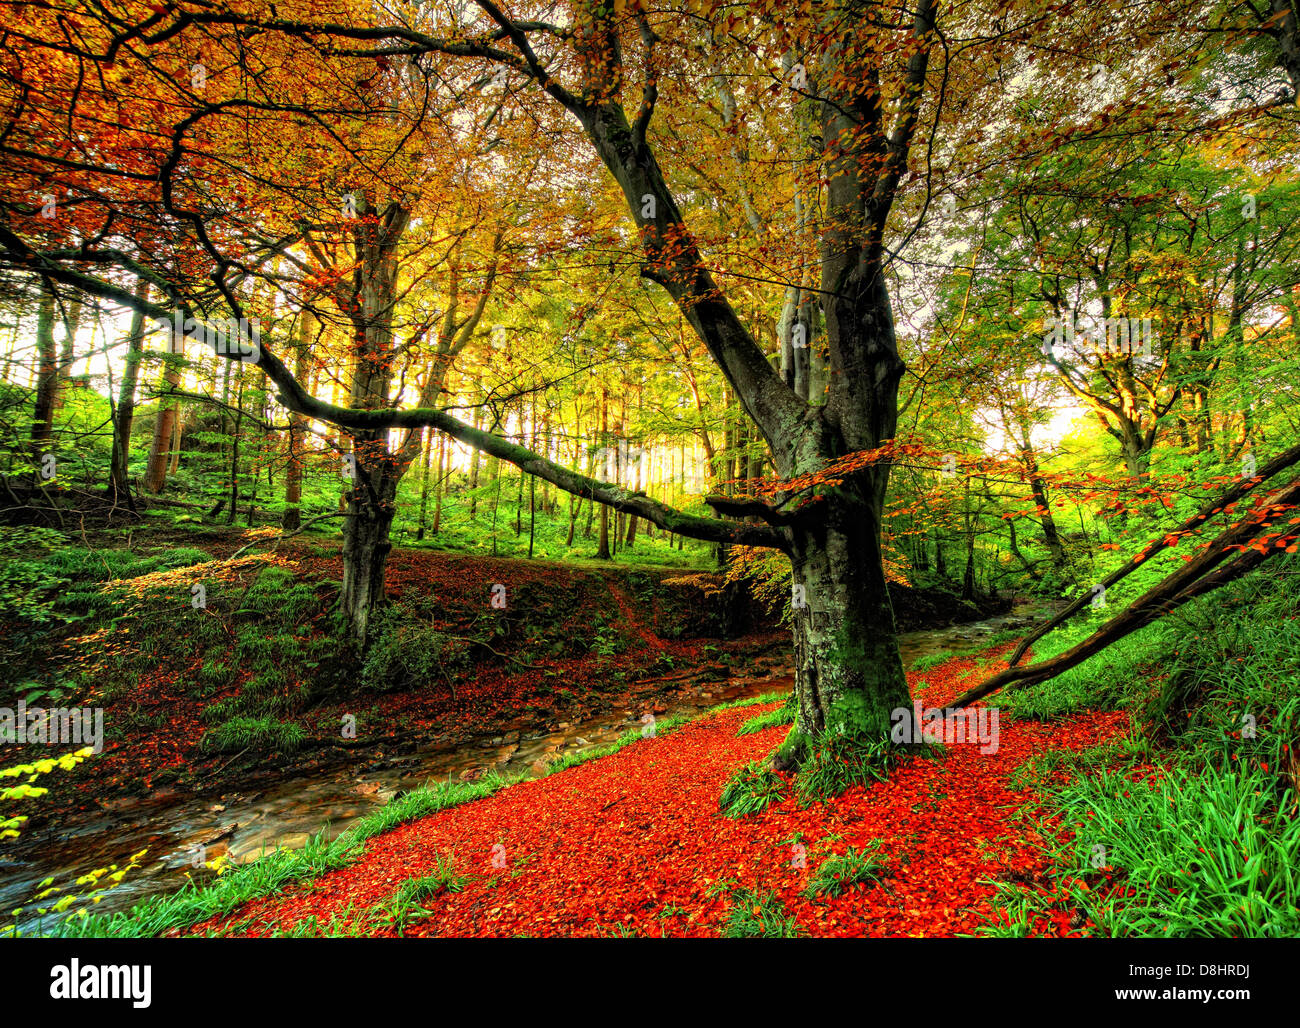 Autumn forest scene at Humbie Woods , East Lothian, Scotland UK - Stock Image